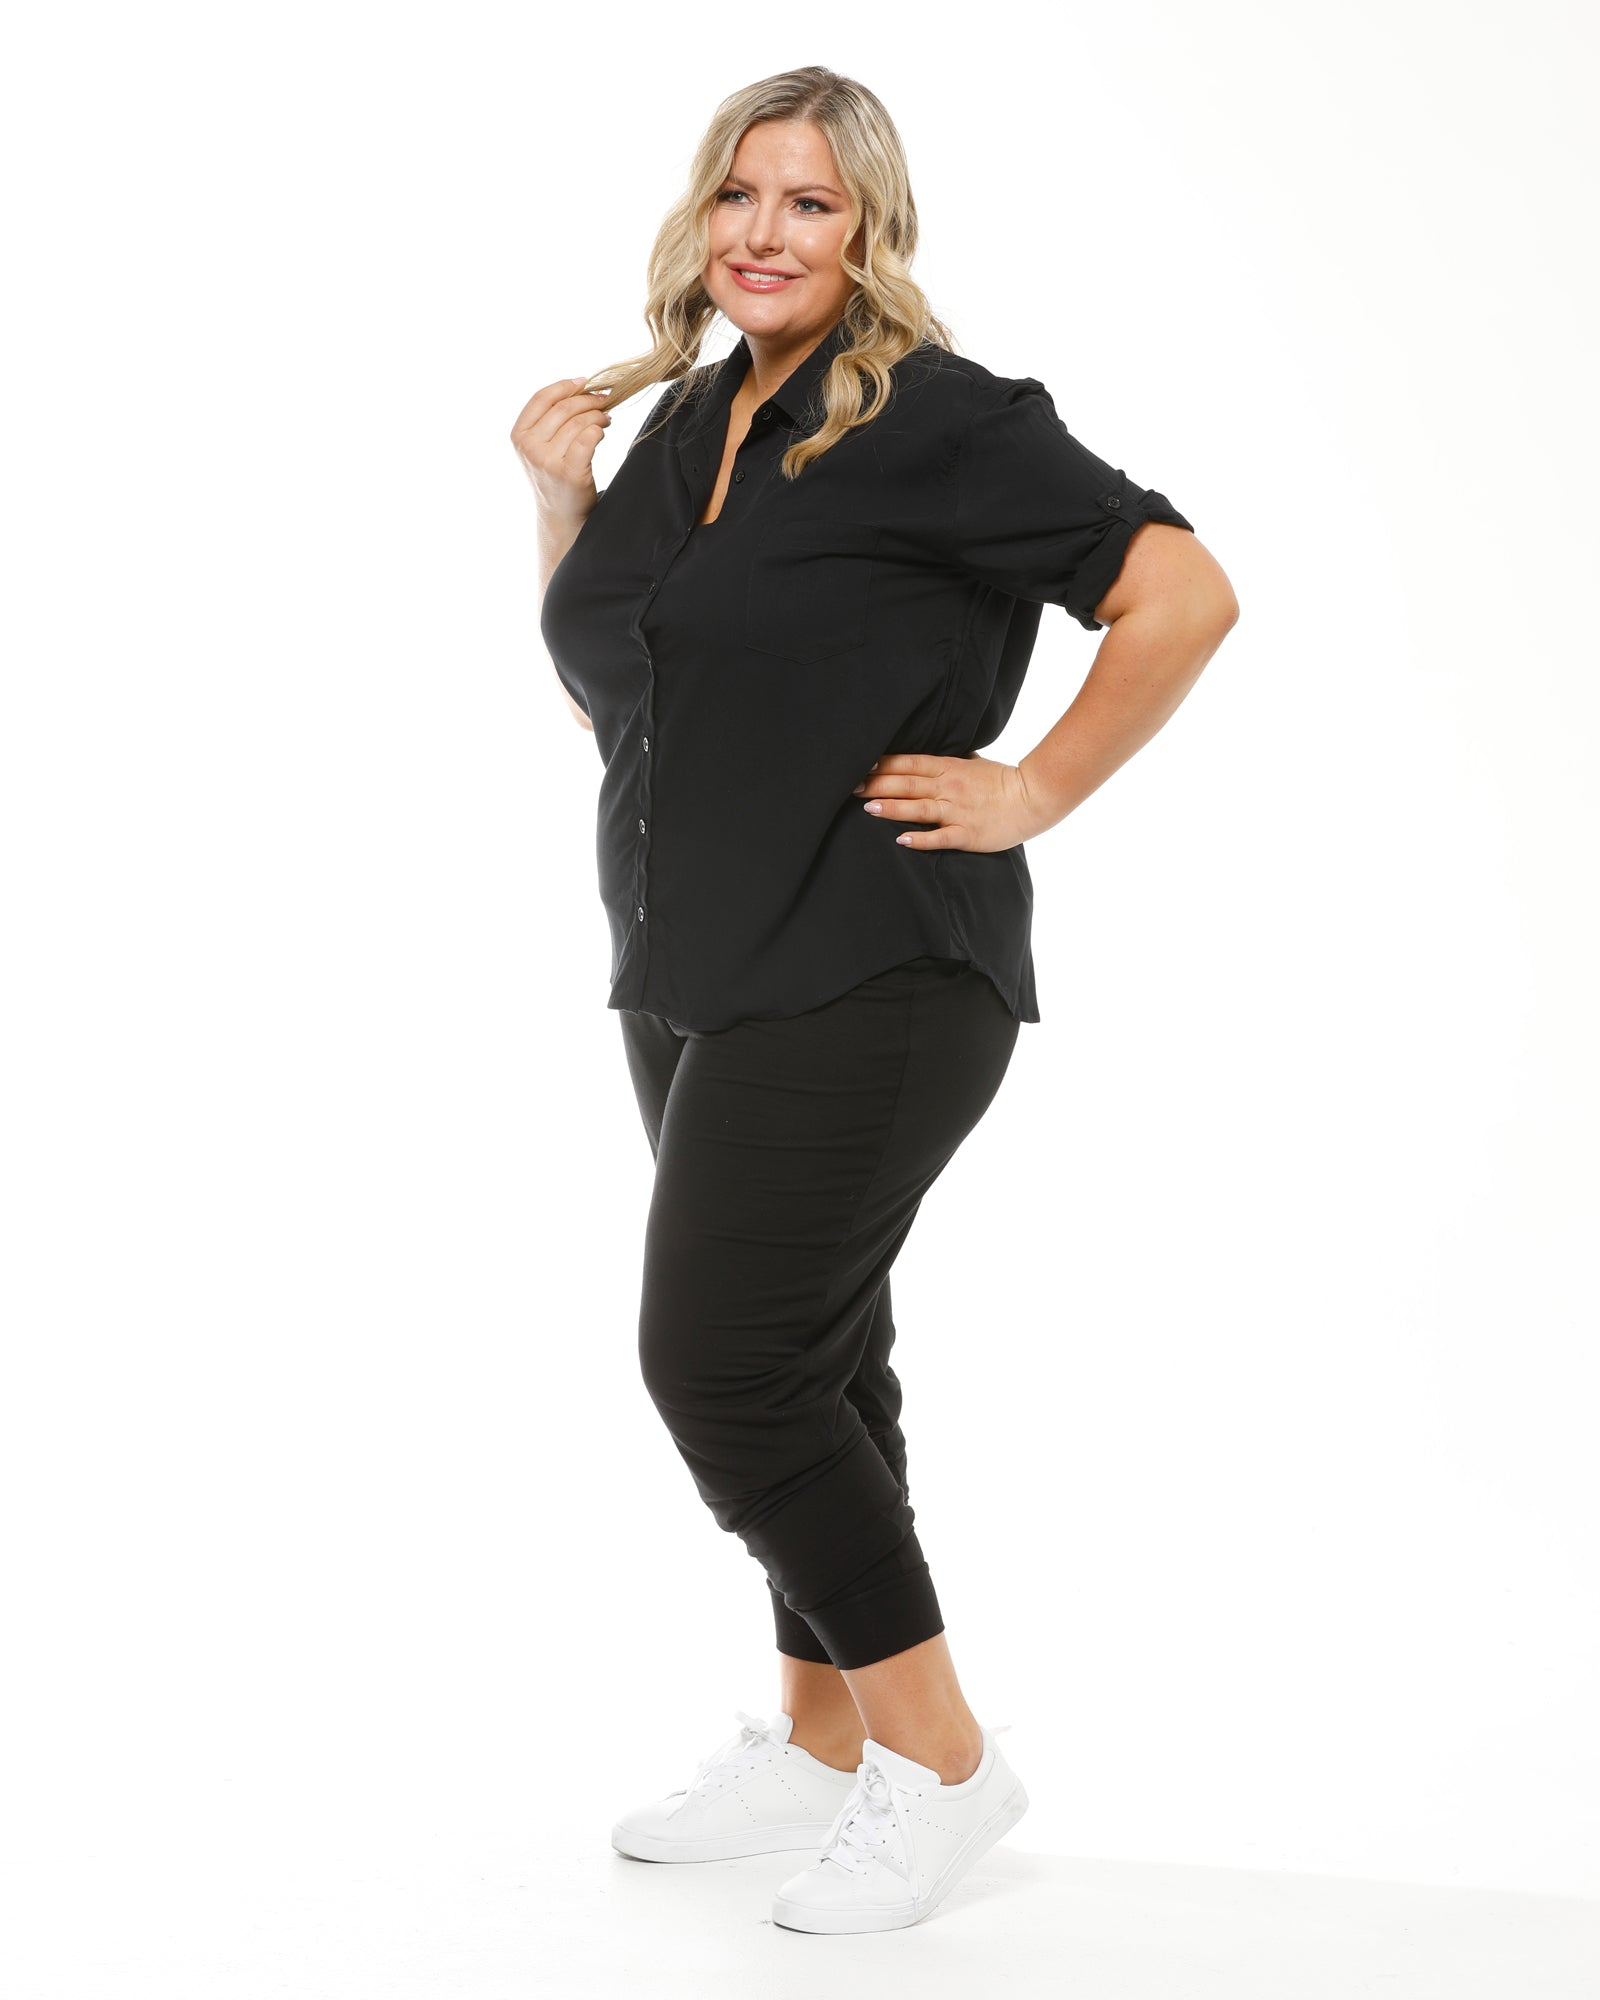 Bamboo Slouch Pant - black sizes 10-24